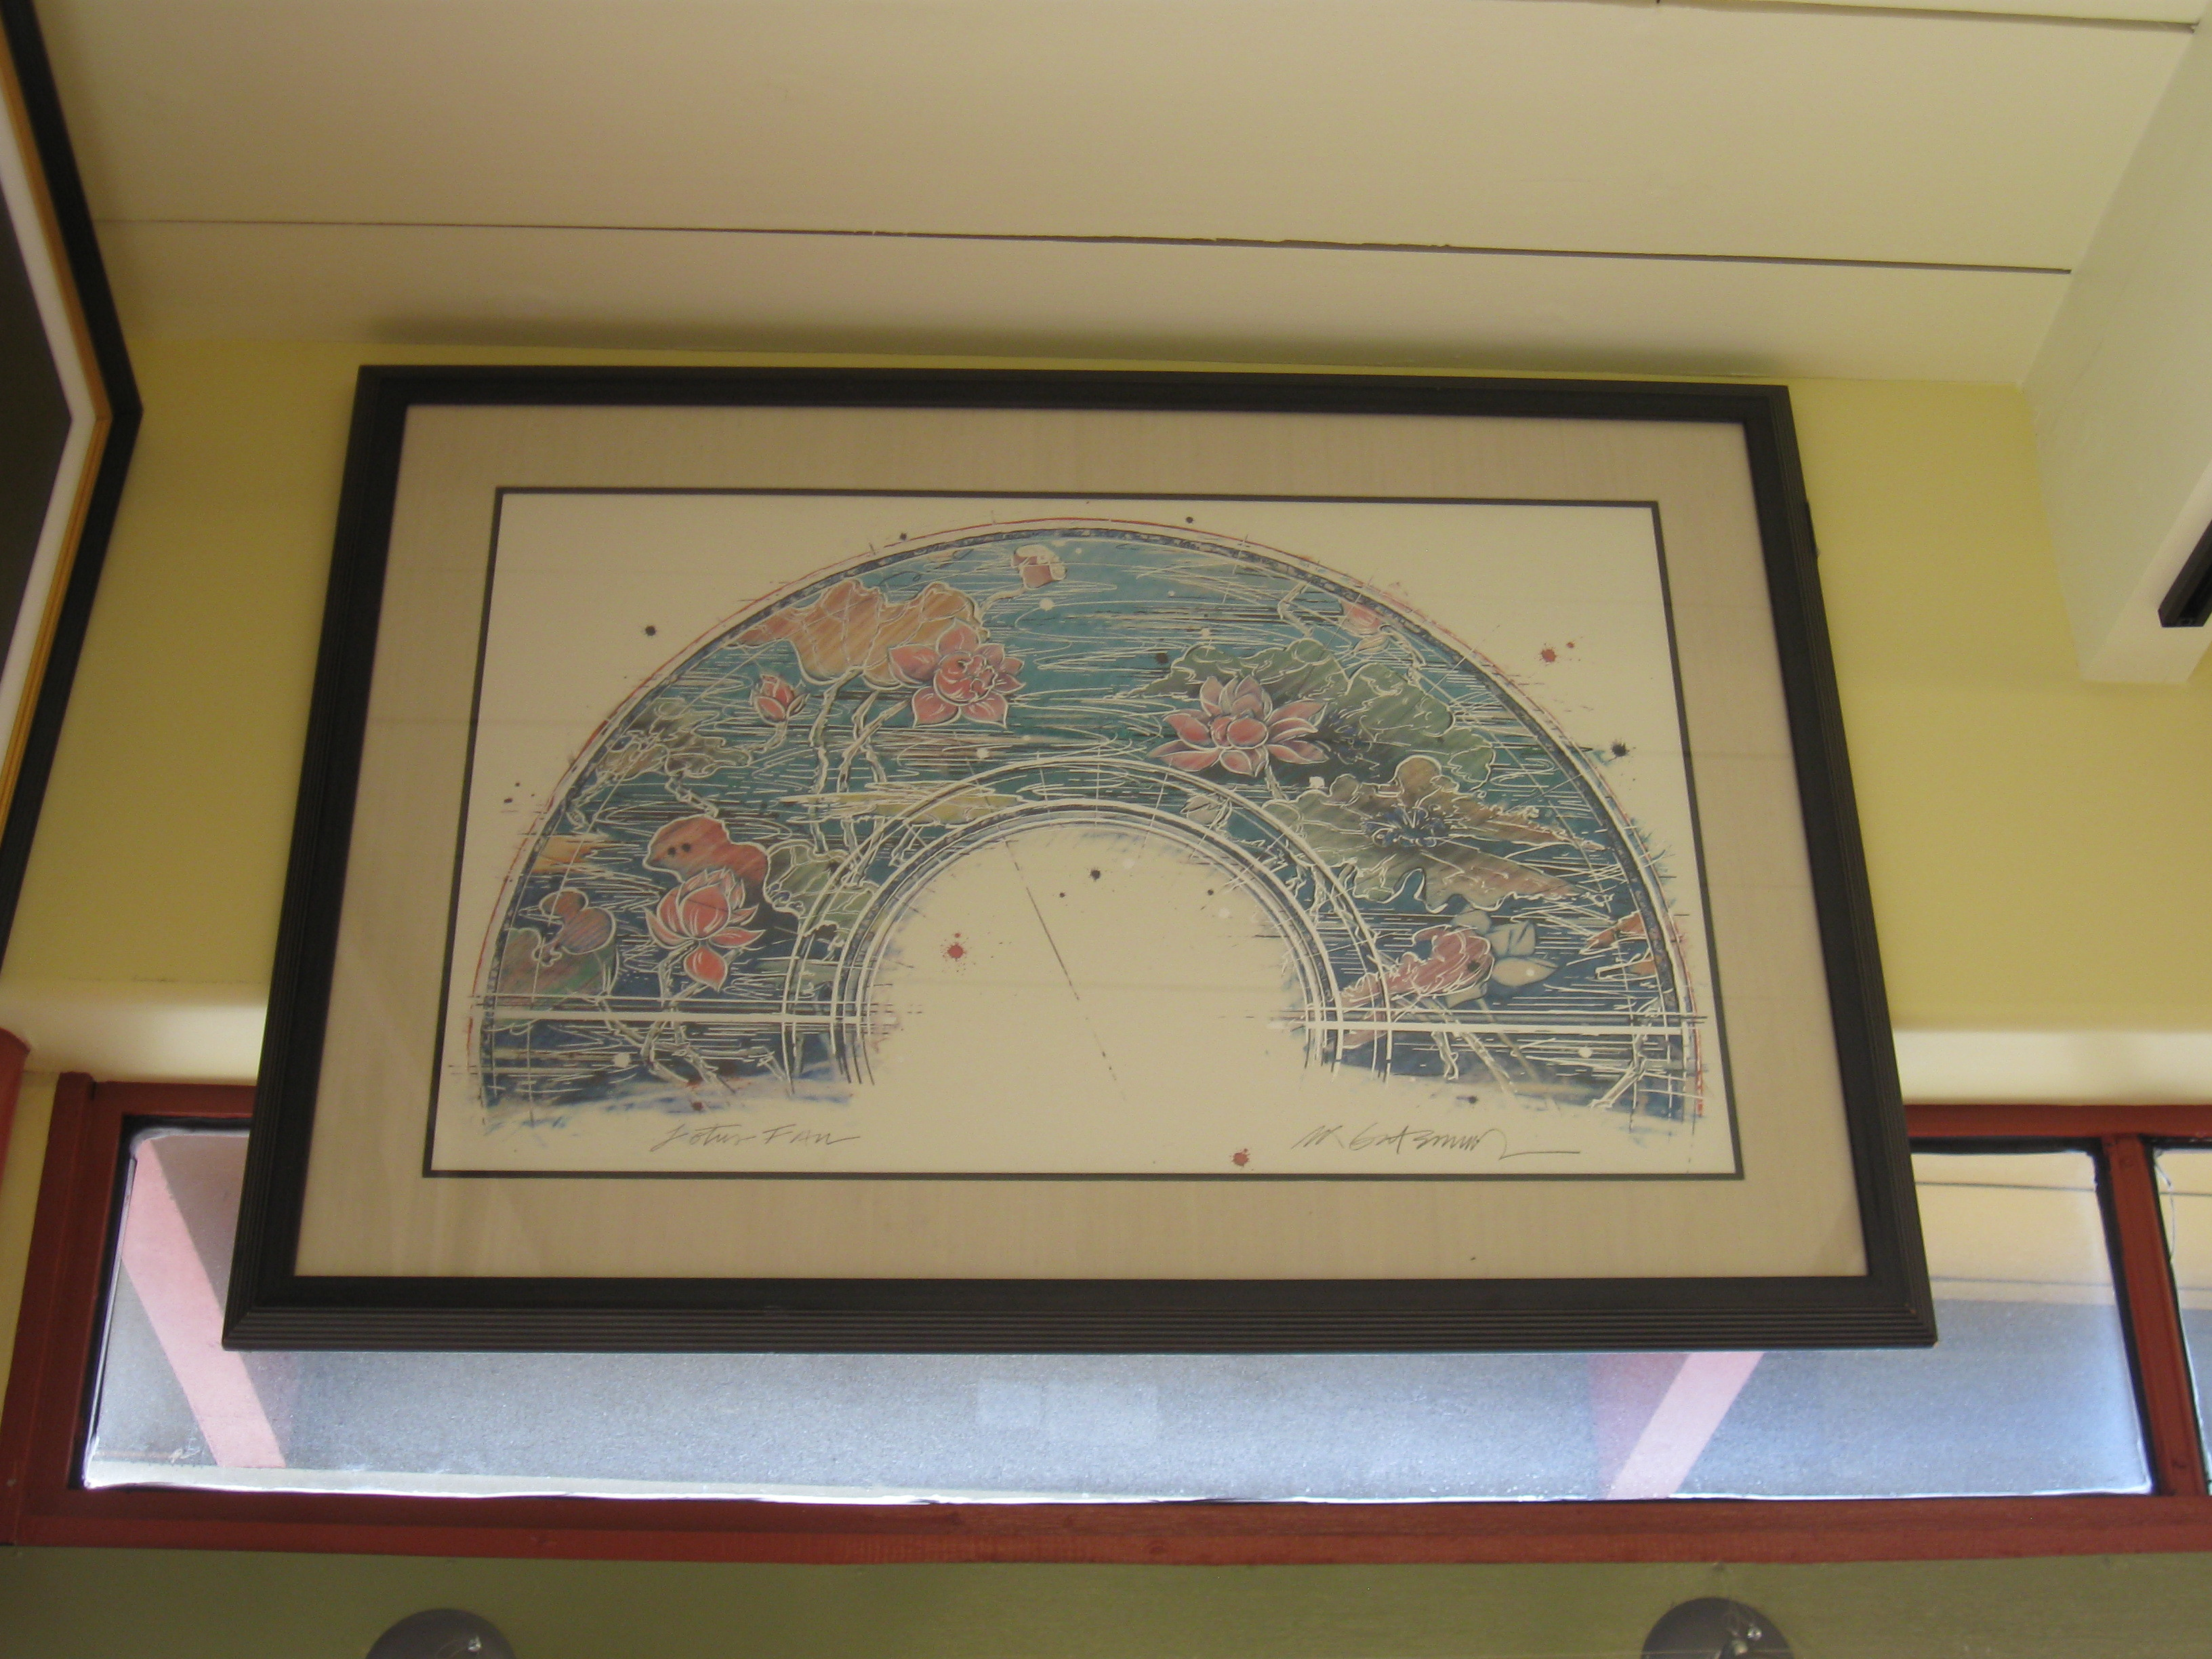 Flattened Fan Floral Pond Scene Serigraph by William Gatewood -**Store Pick Up**